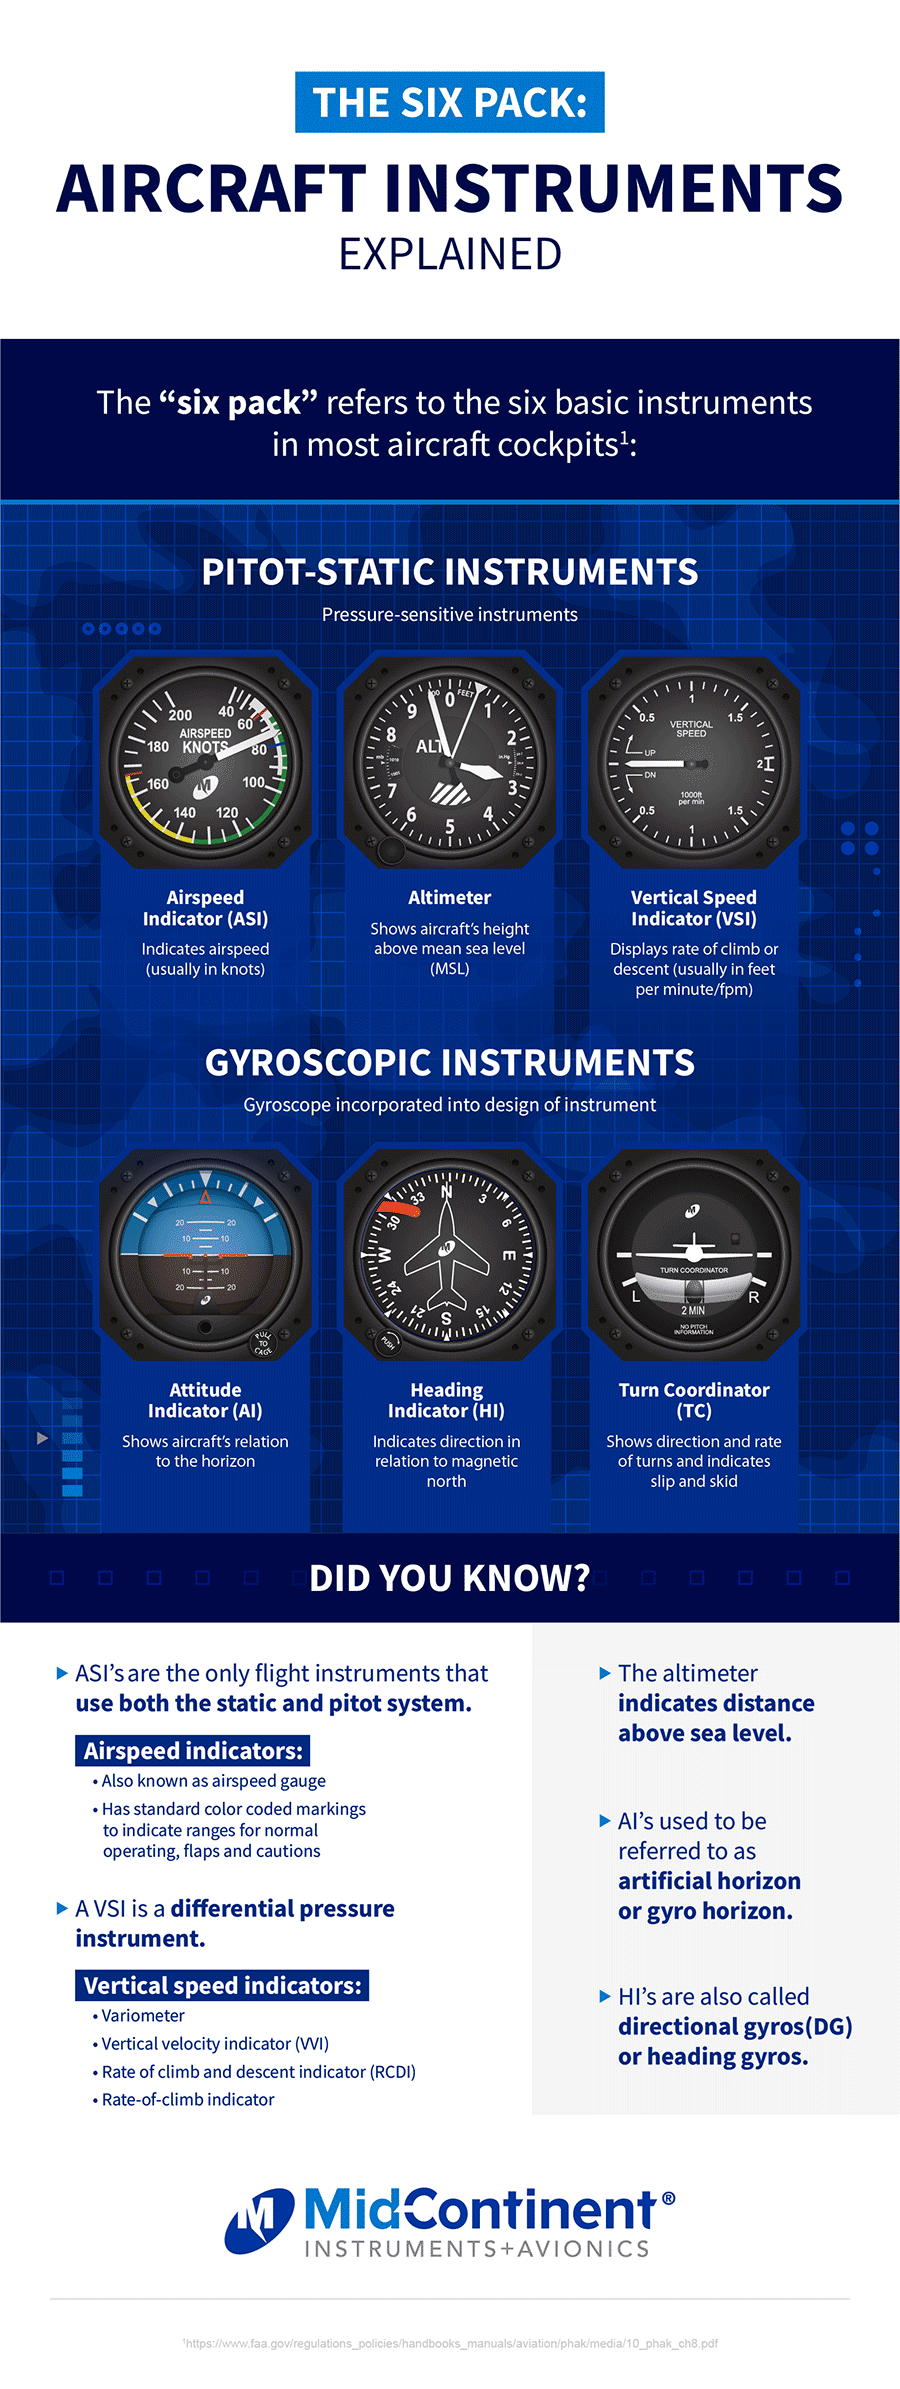 Six Pack: Aircraft Instruments Explained